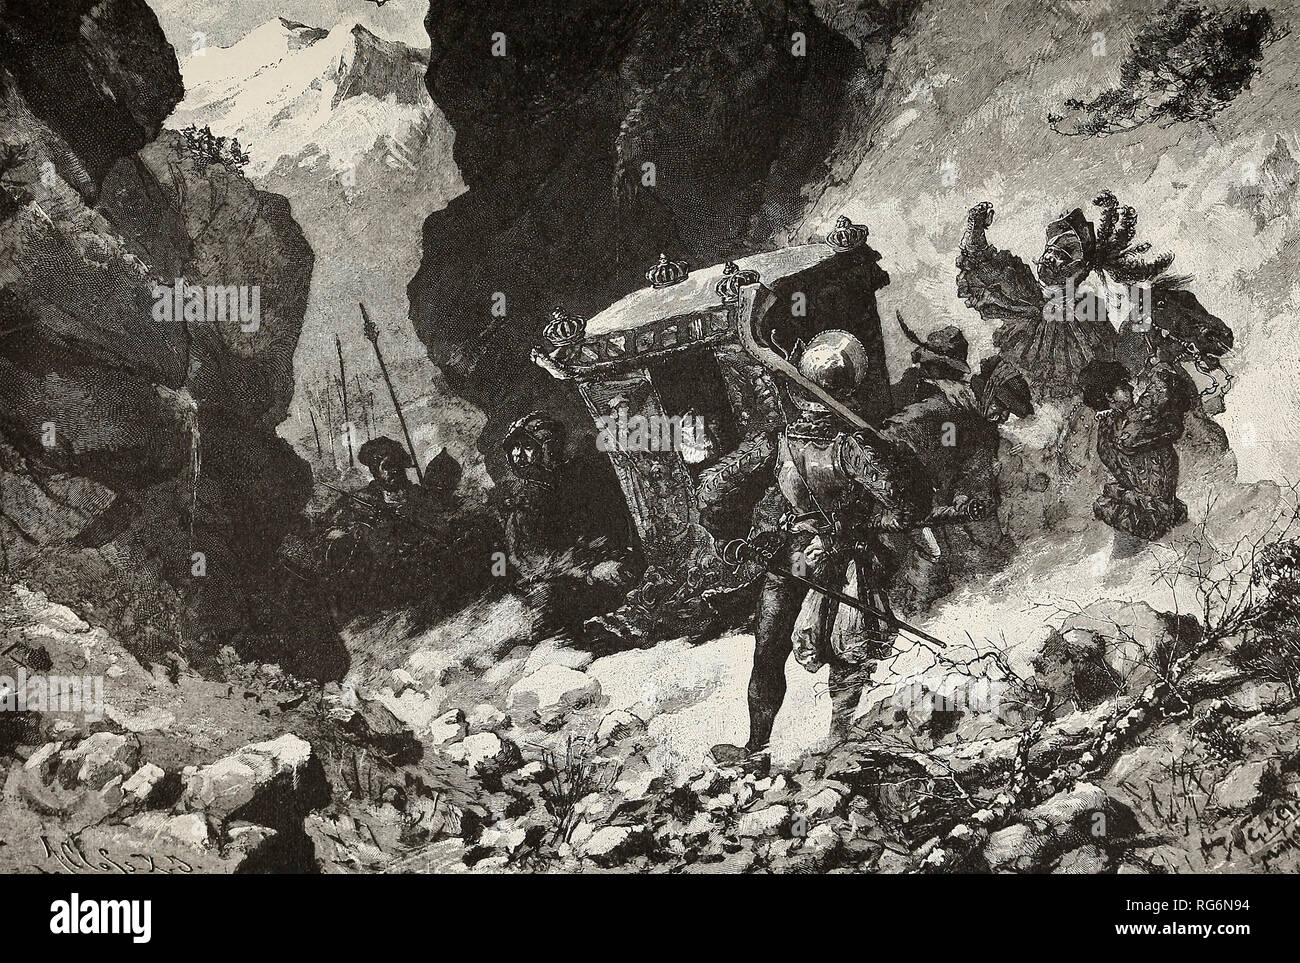 The Flight of the Emperor Charles - Charles V flees suddenly over the Alps to escape the German Rebels - Stock Image